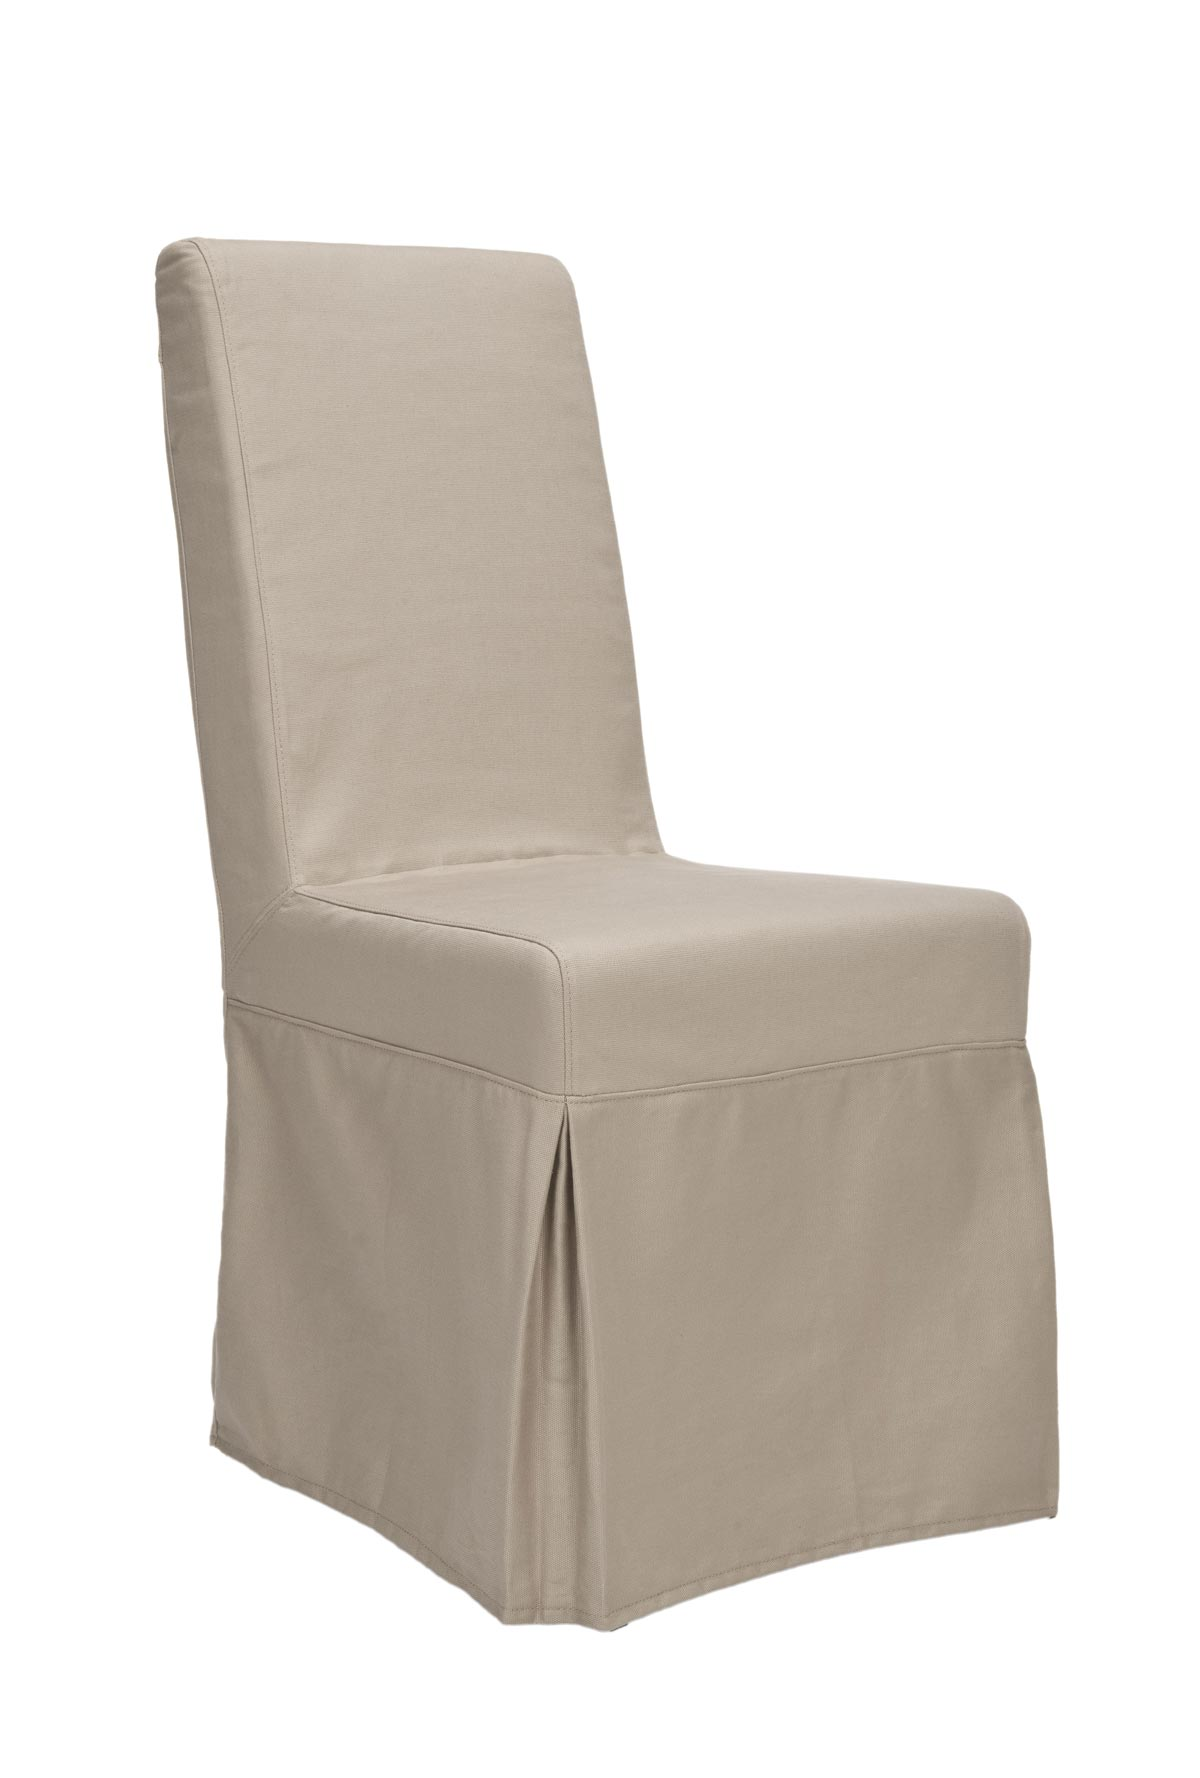 Slip Covers For Chairs Safavieh Mcr4521a Adrianna Slip Cover Chair Set Of Two